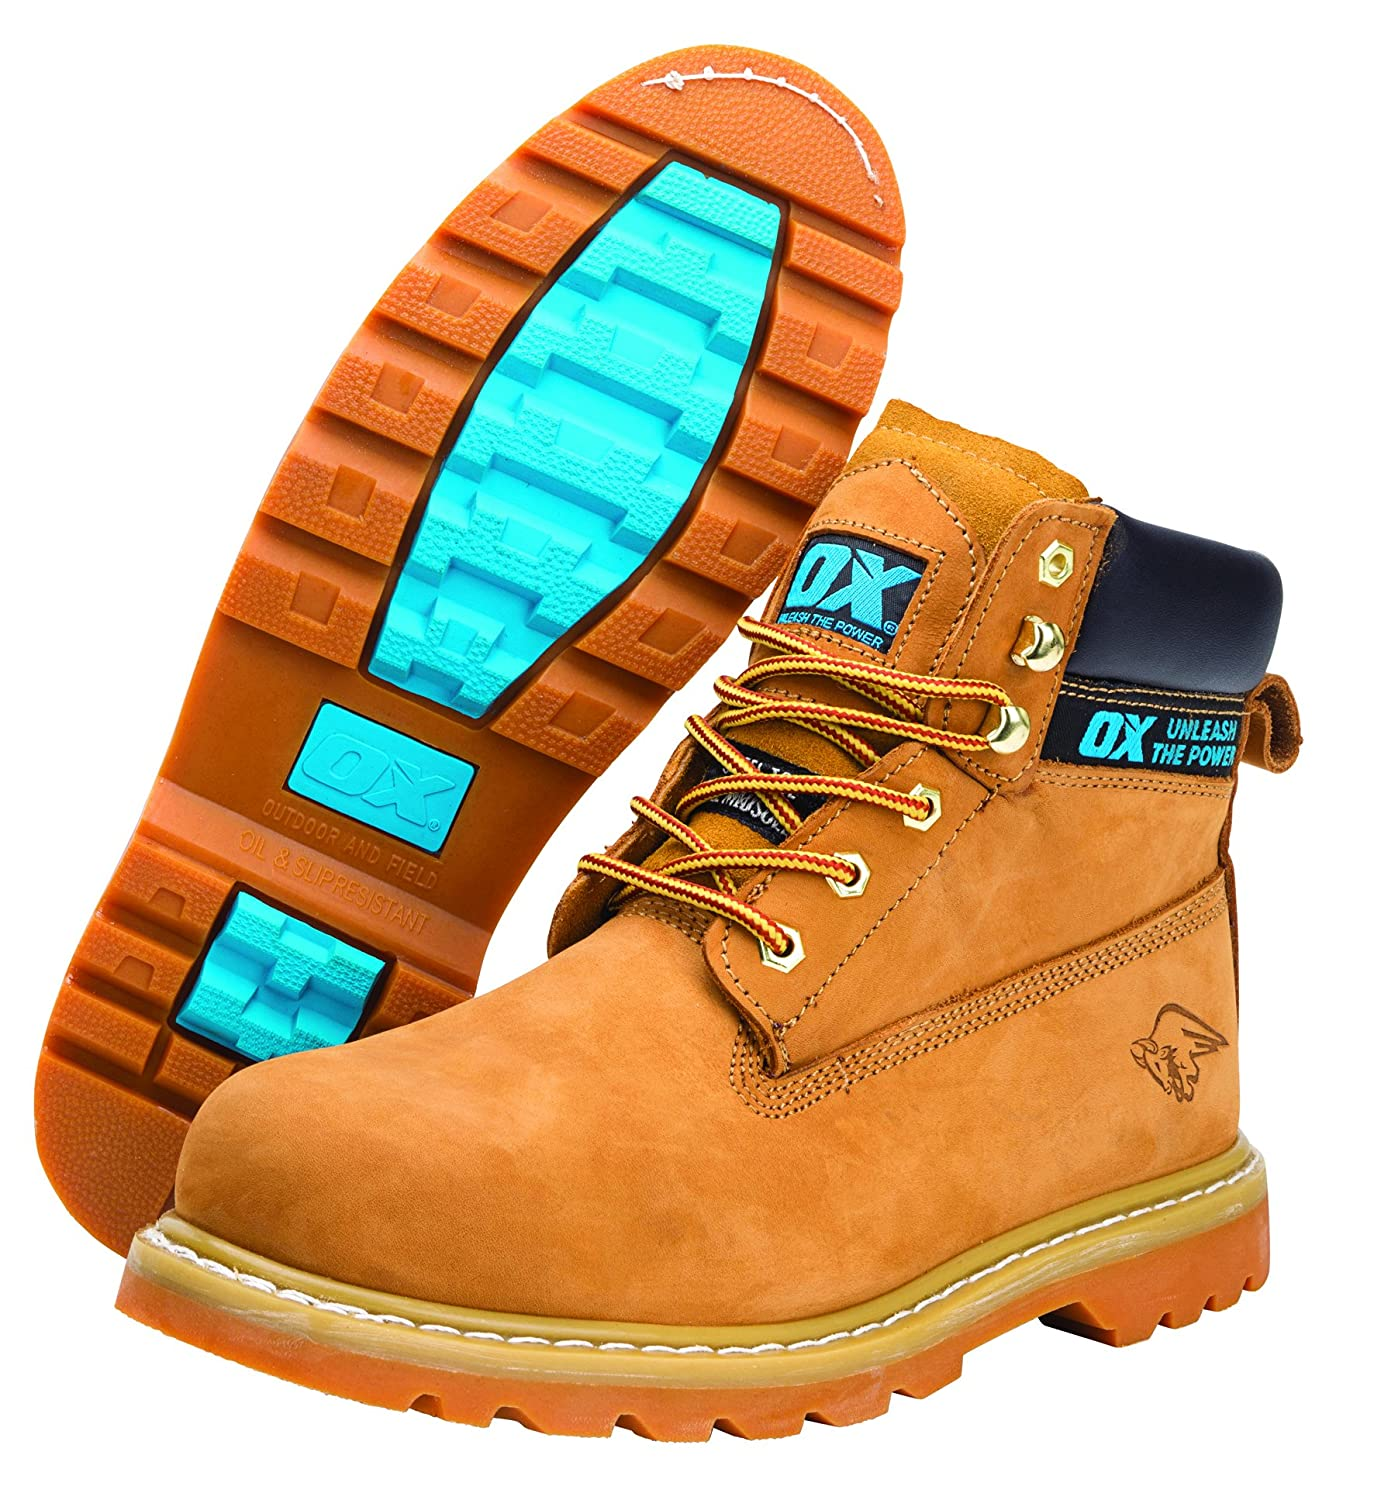 f4752f89d1d OX Safety Boots - Industrial Grade Honey Nubuck Safety Boots with Steel Toe  Cap - Tan - Size 9